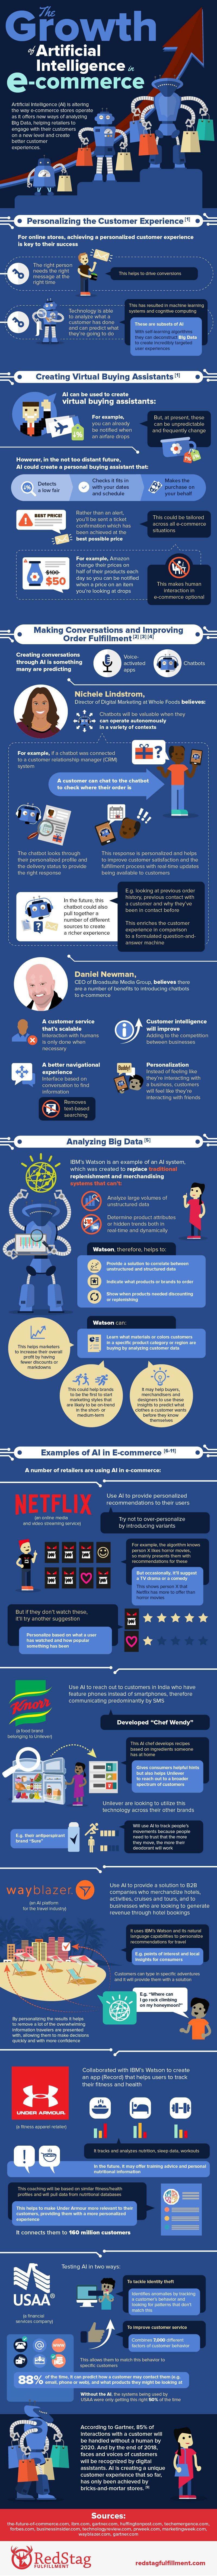 The Growth of Artificial Intelligence in E-commerce #Infographic